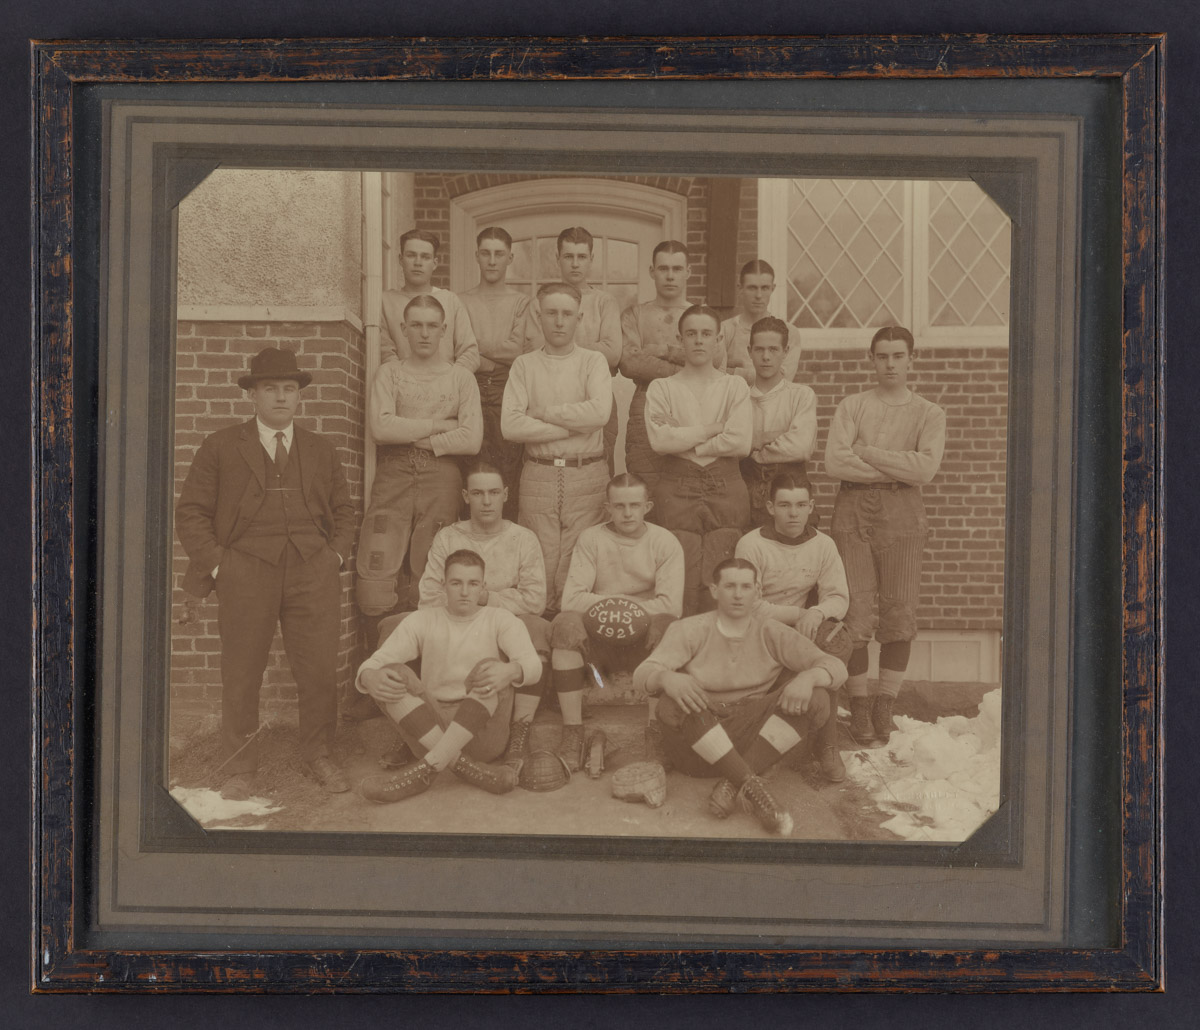 Gilman High School Championship football team Framed Photograph, 1921